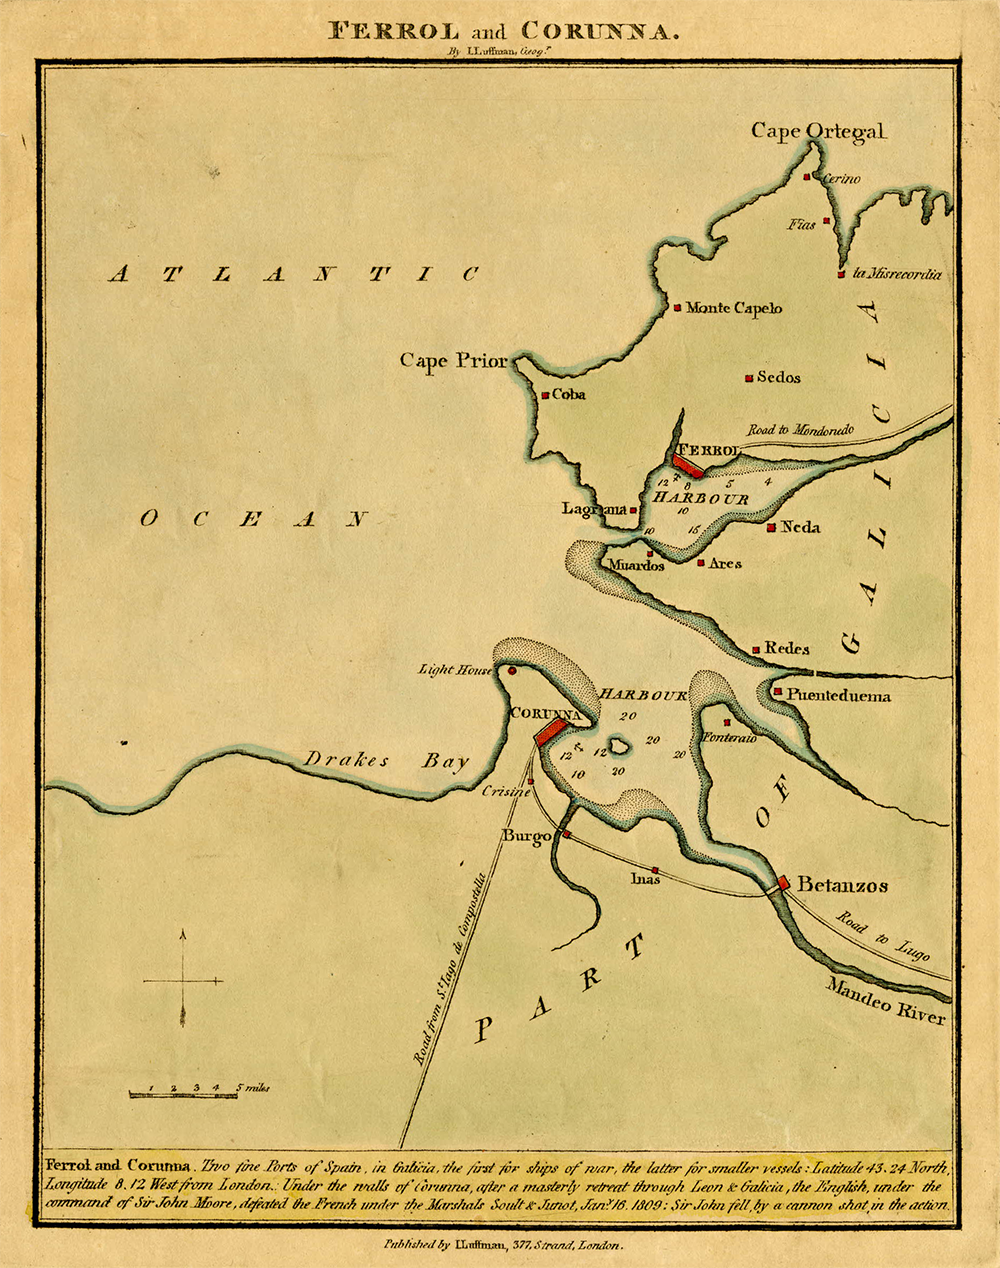 Map of part of Galicia showing the harbors of Ferrol and Corruna, by John Luffman, c. 1809. © The Trustees of the British Museum.